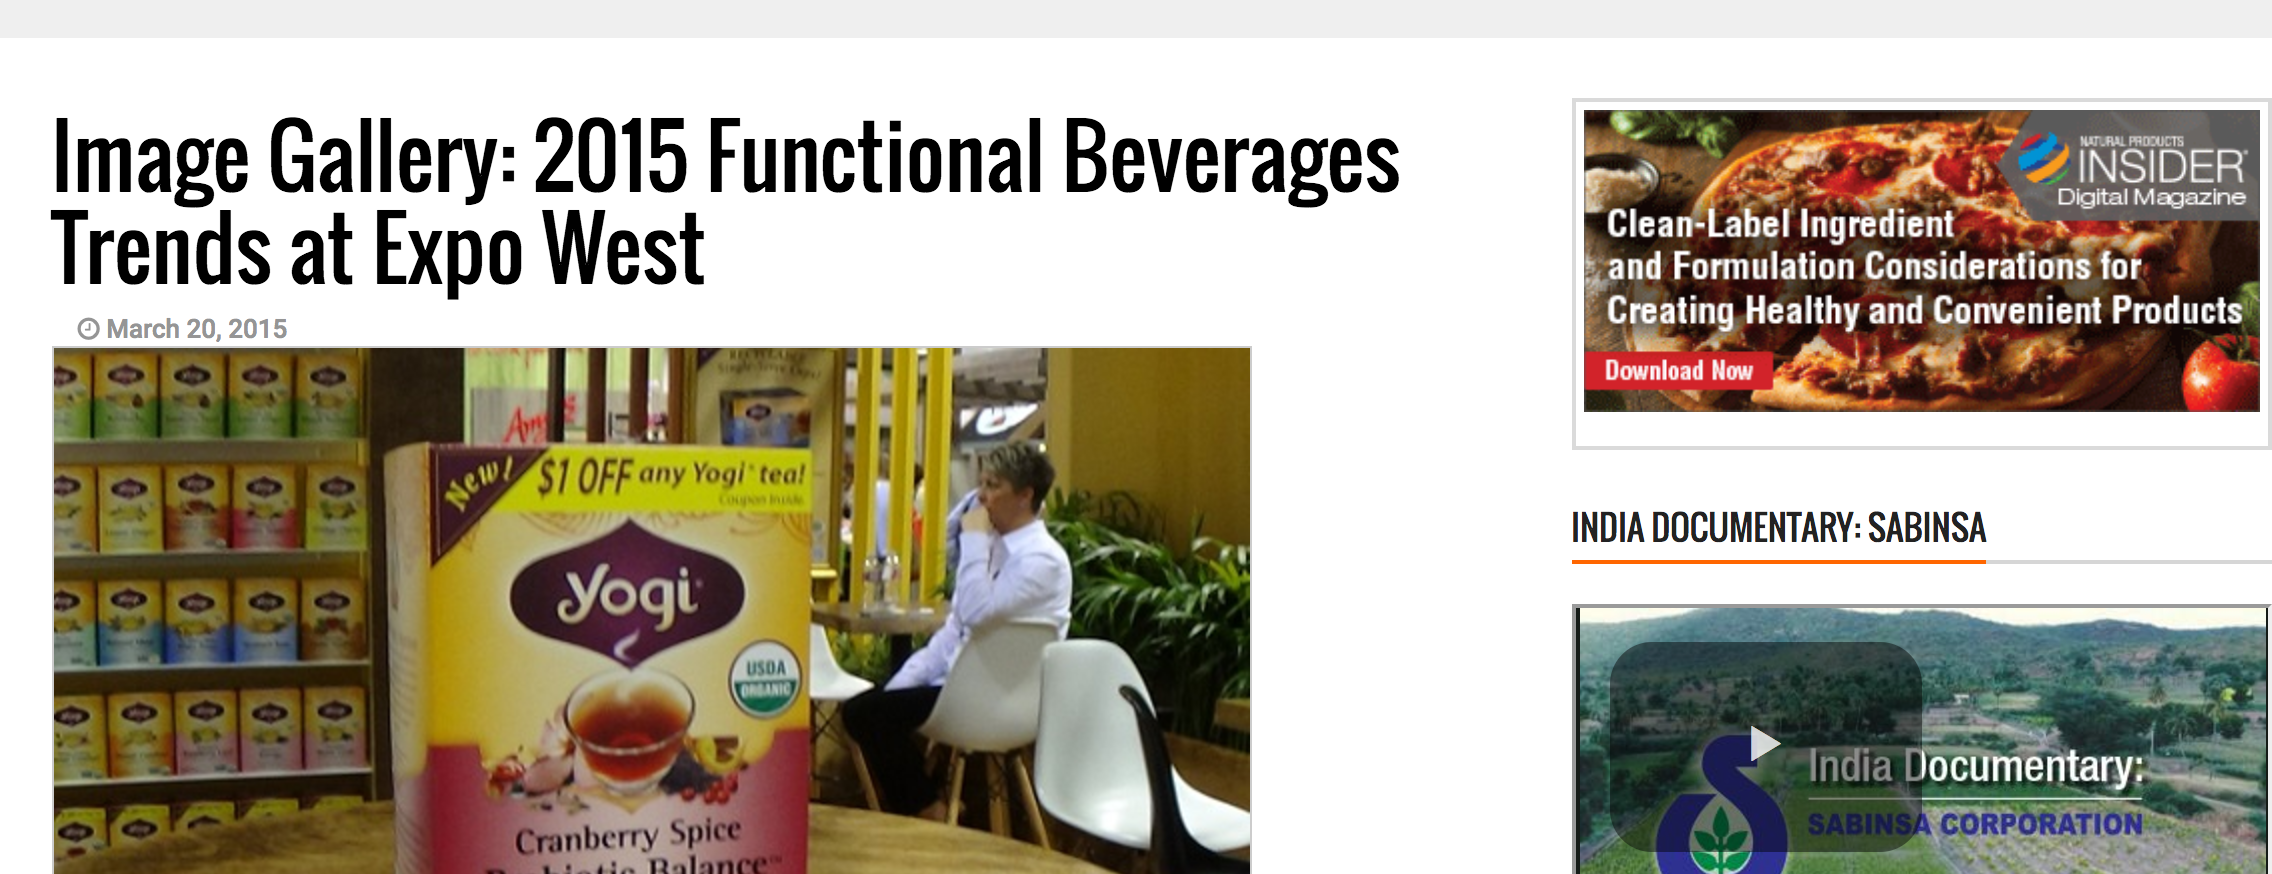 2015 Functional Beverages Trends at Expo West.